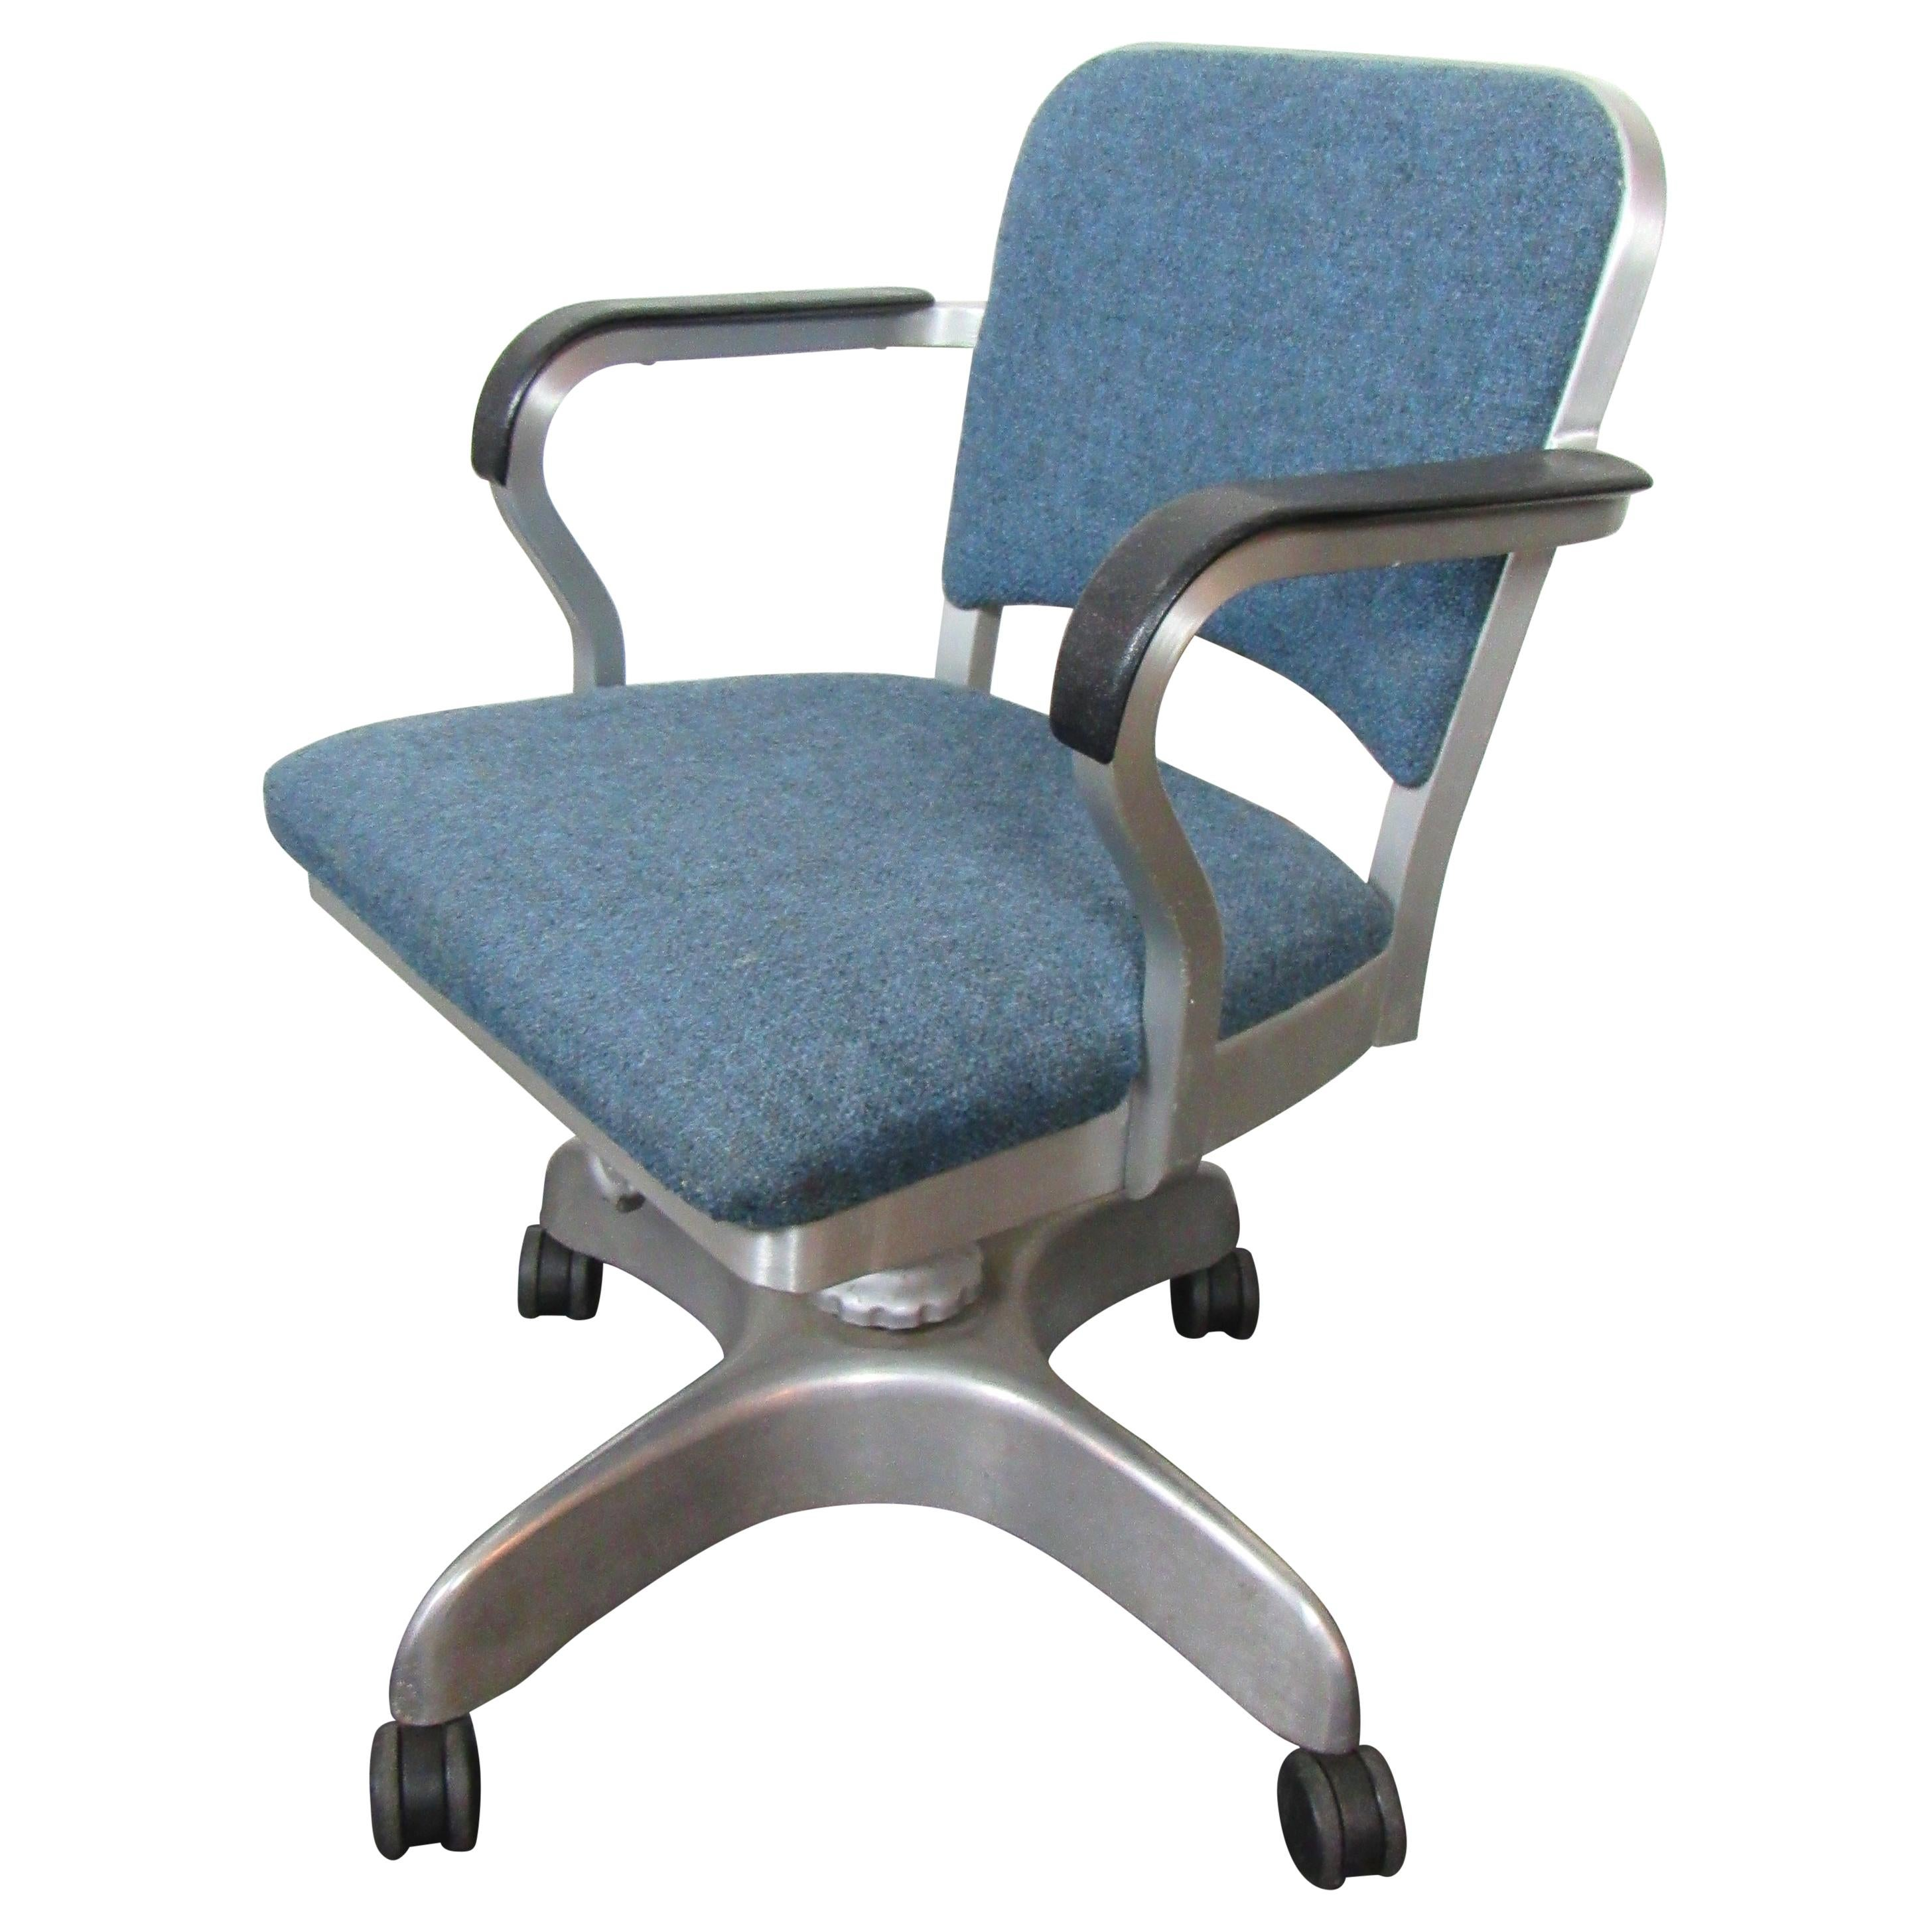 Mid-Century Modern Industrial Emeco Office Chair